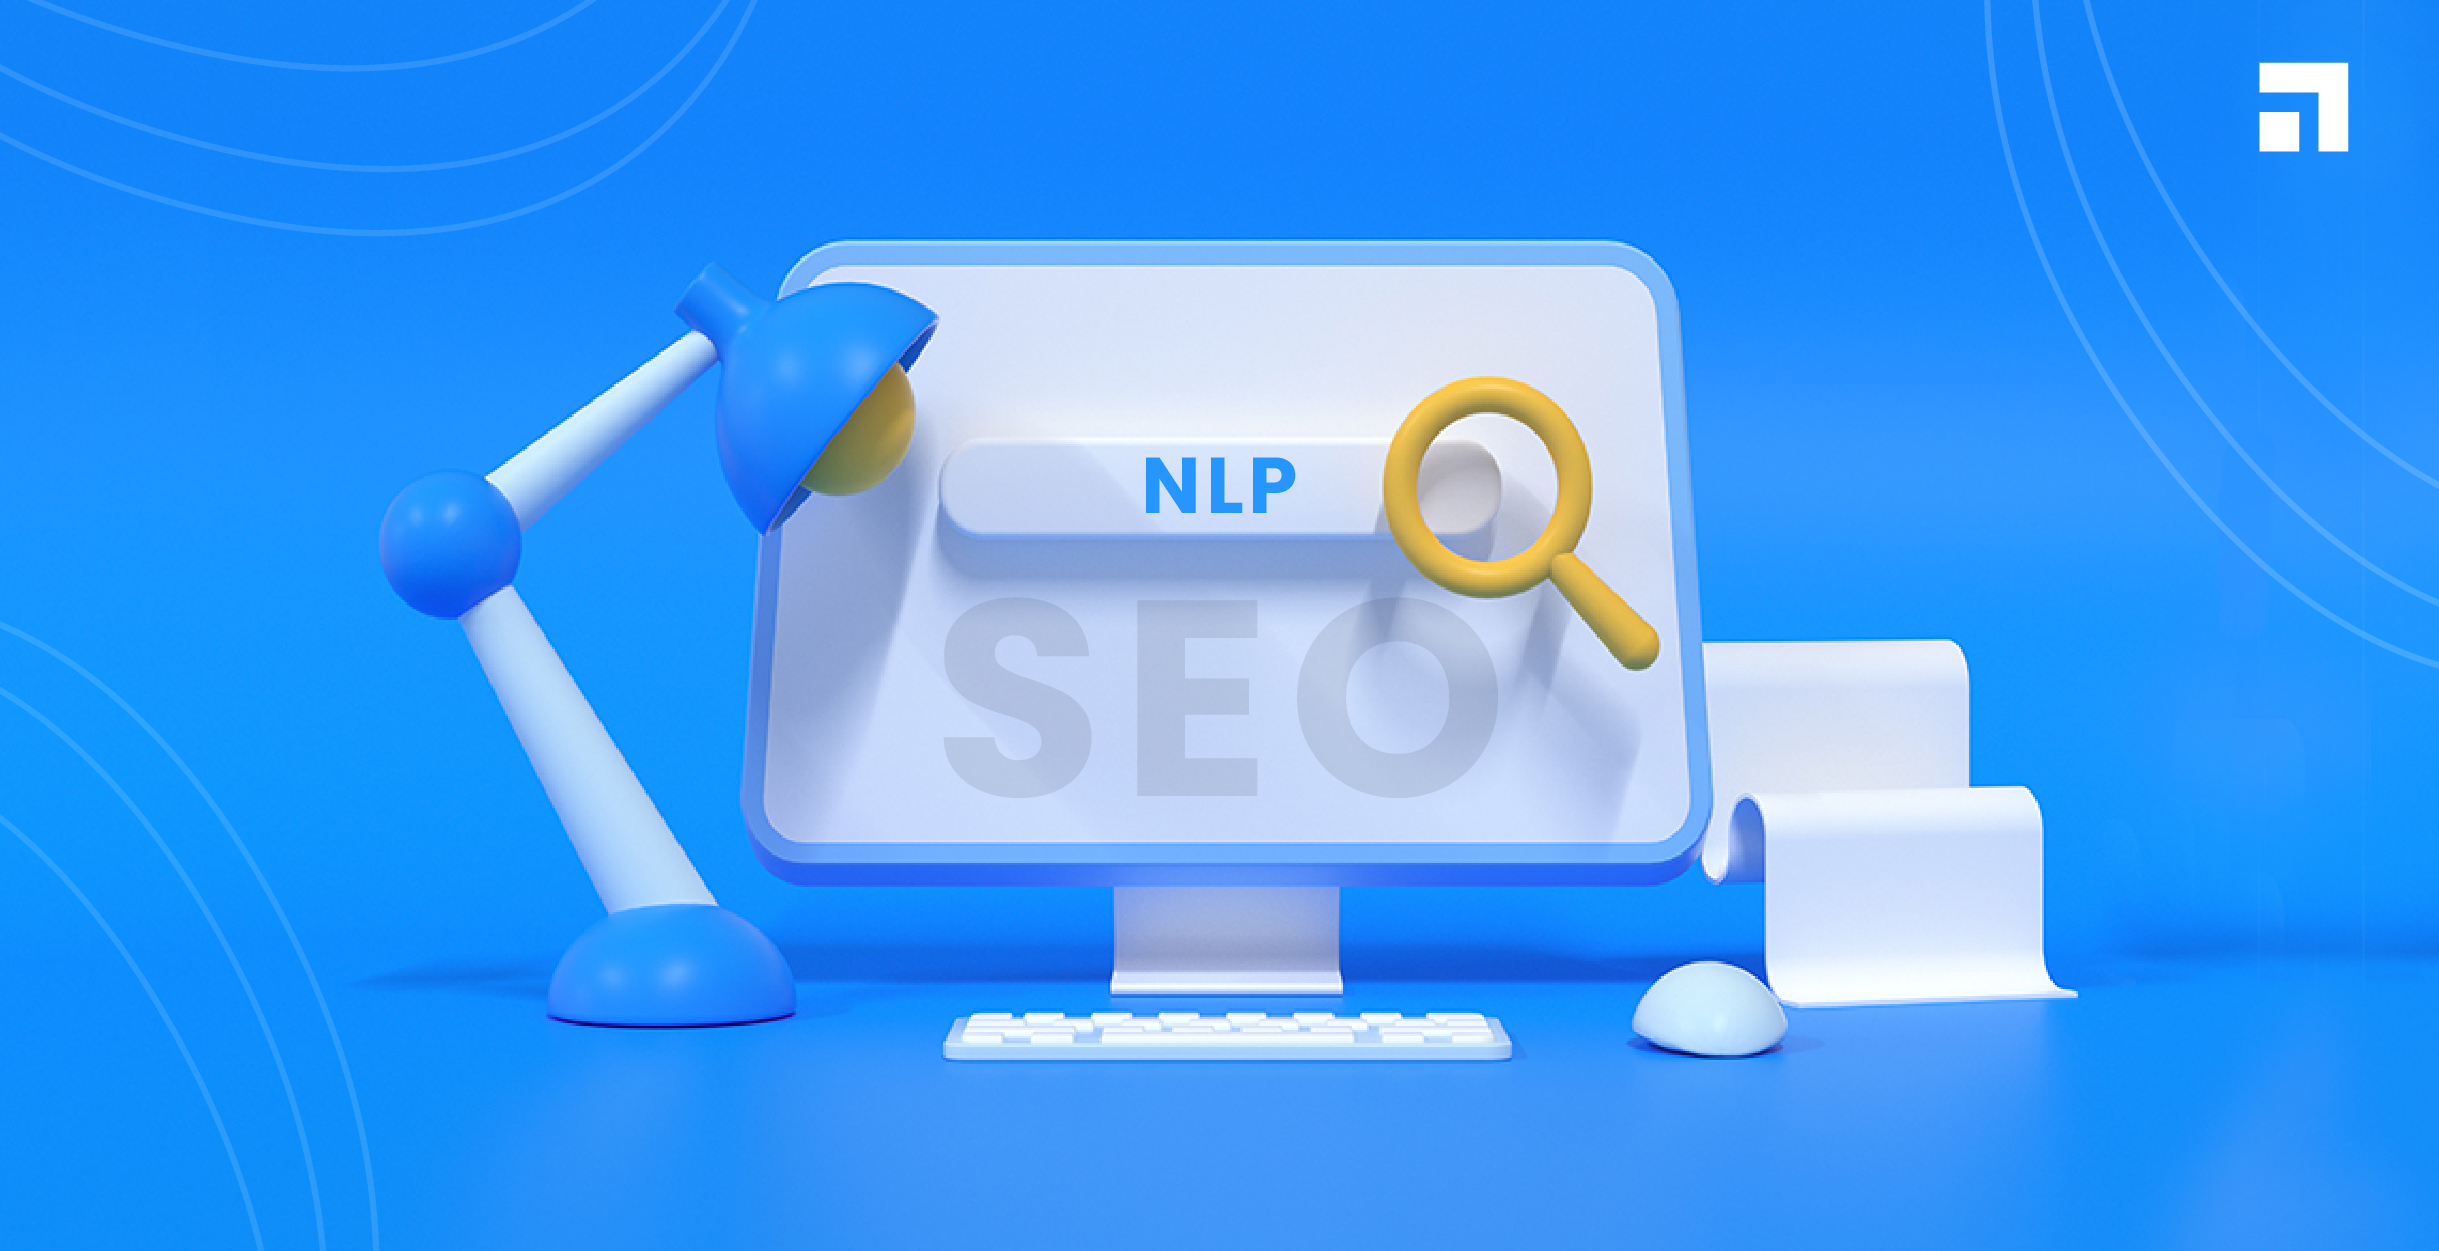 Everything You Need to Know About NLP For SEO in 2021